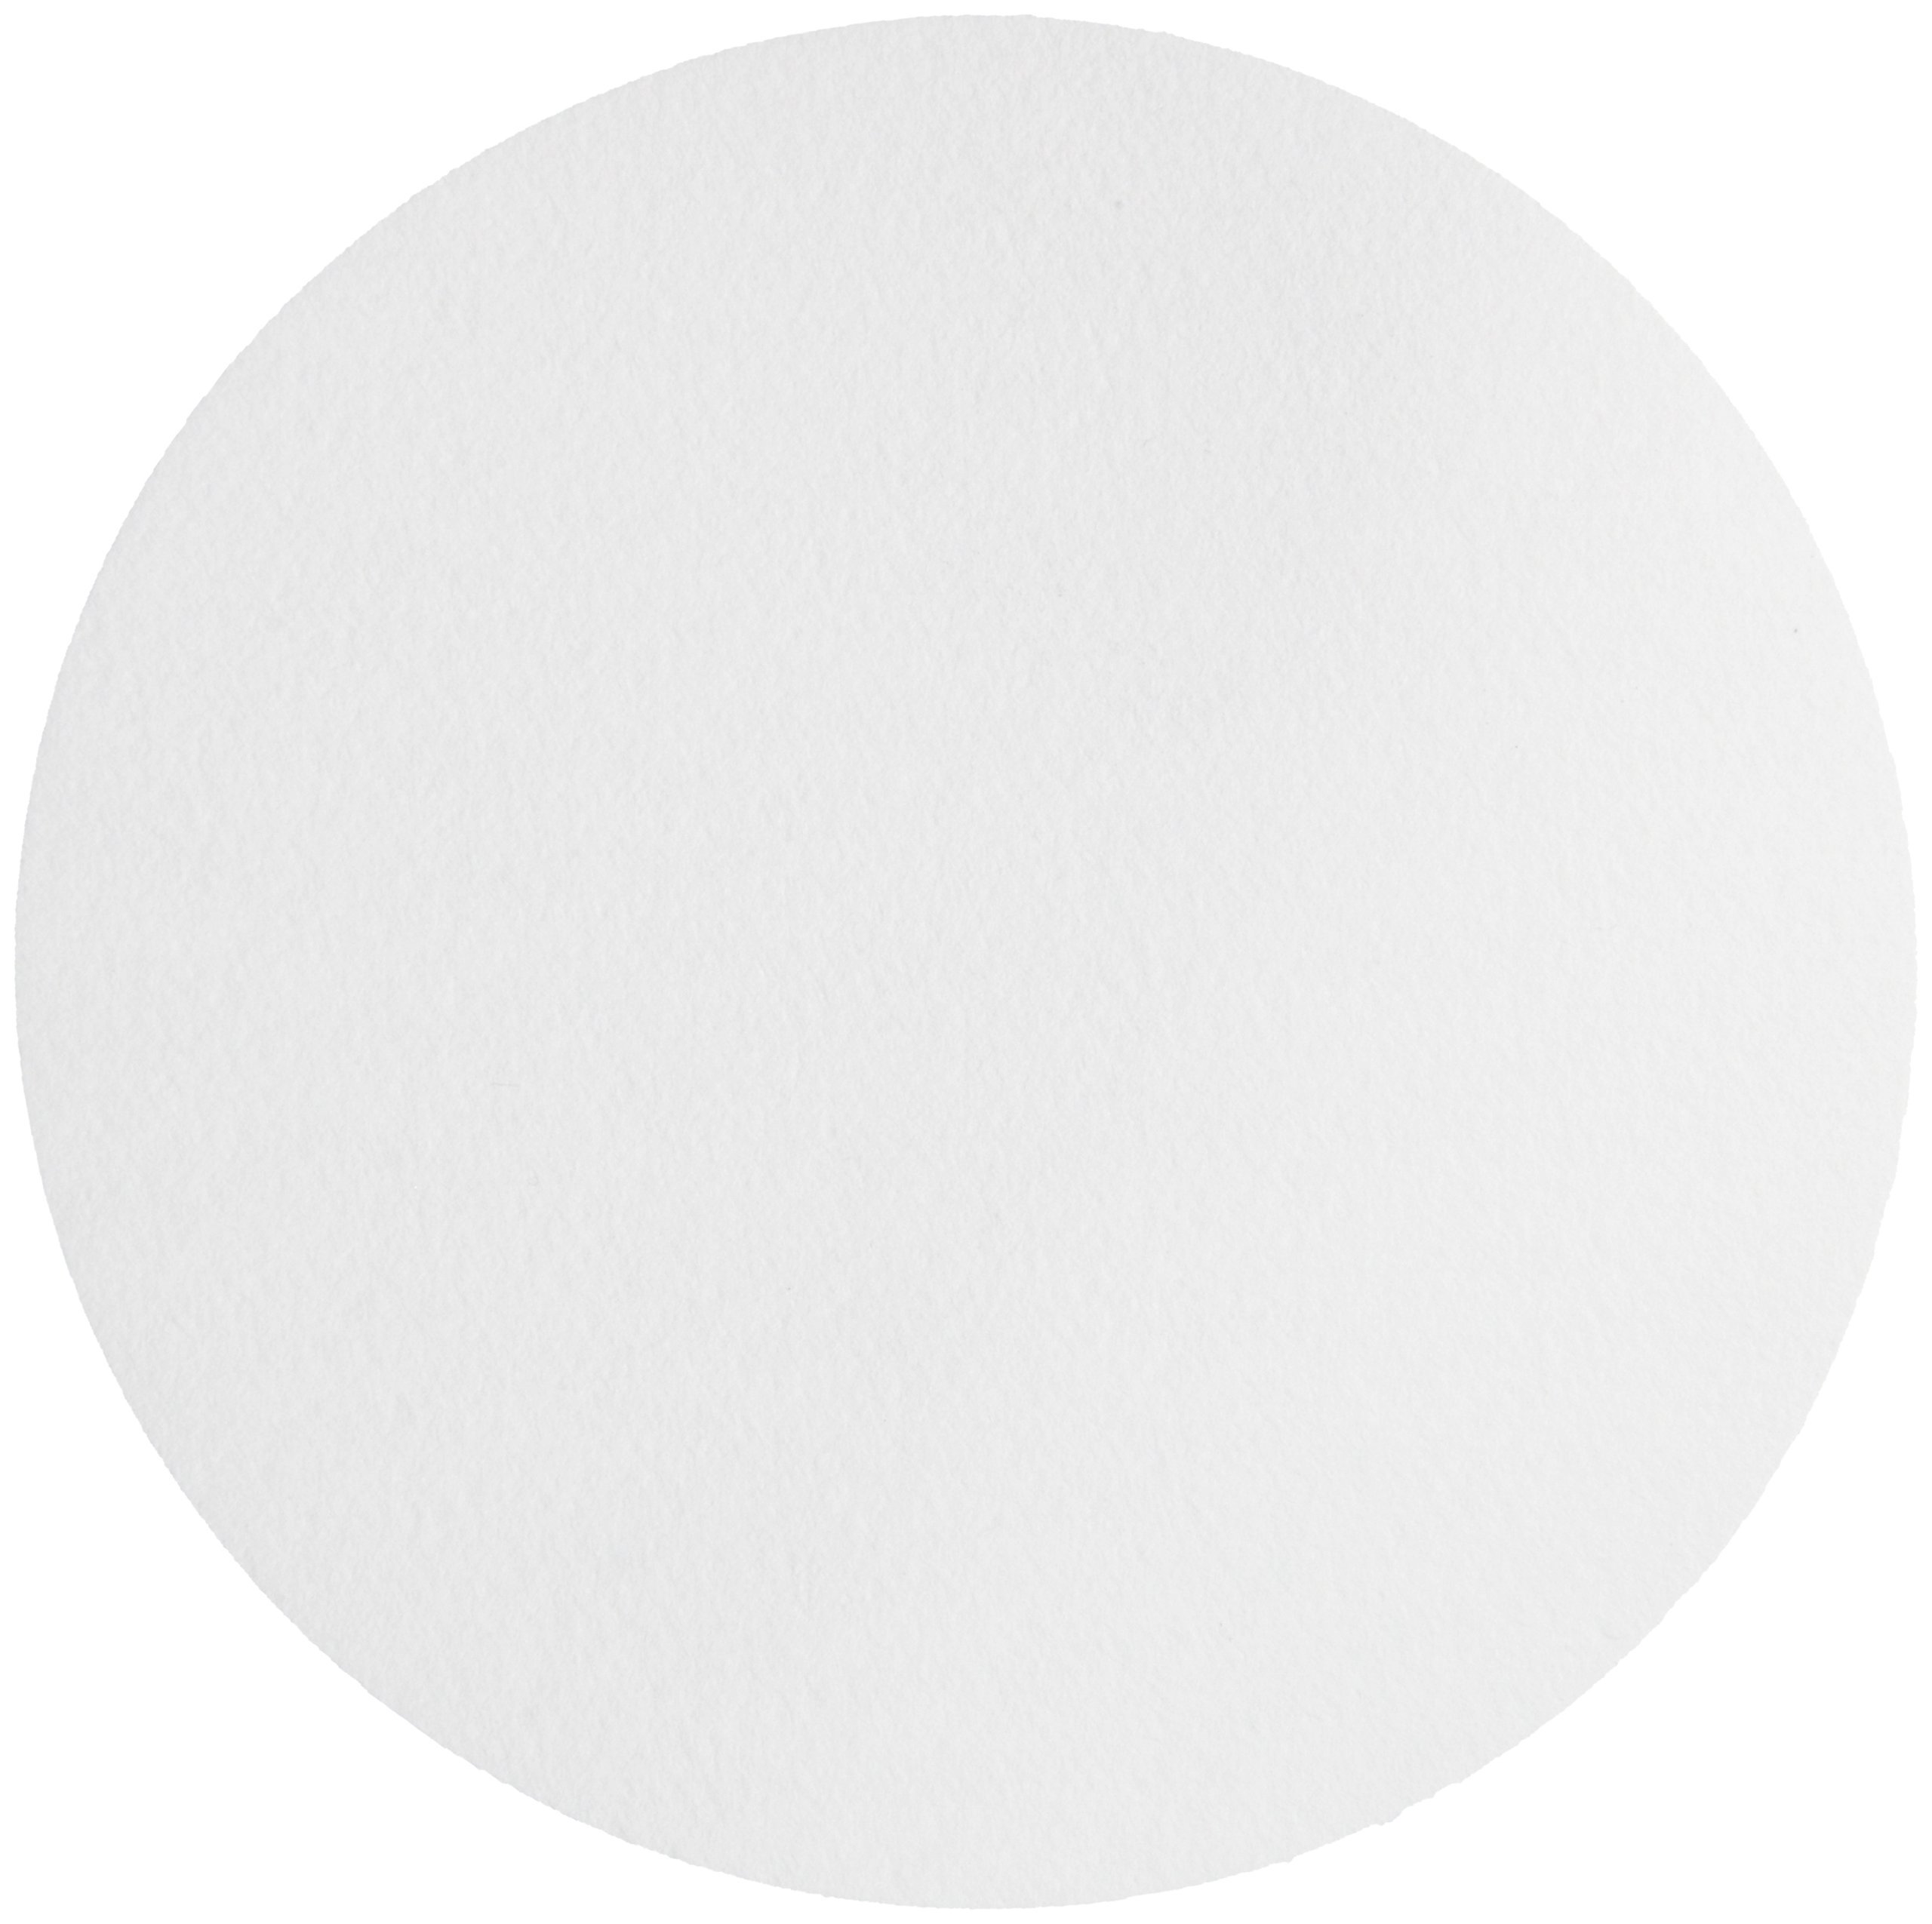 Whatman 1003-055 Quantitative Filter Paper Circles, 6 Micron, 26 s/100mL/sq inch Flow Rate, Grade 3, 55mm Diameter (Pack of 100) by Whatman